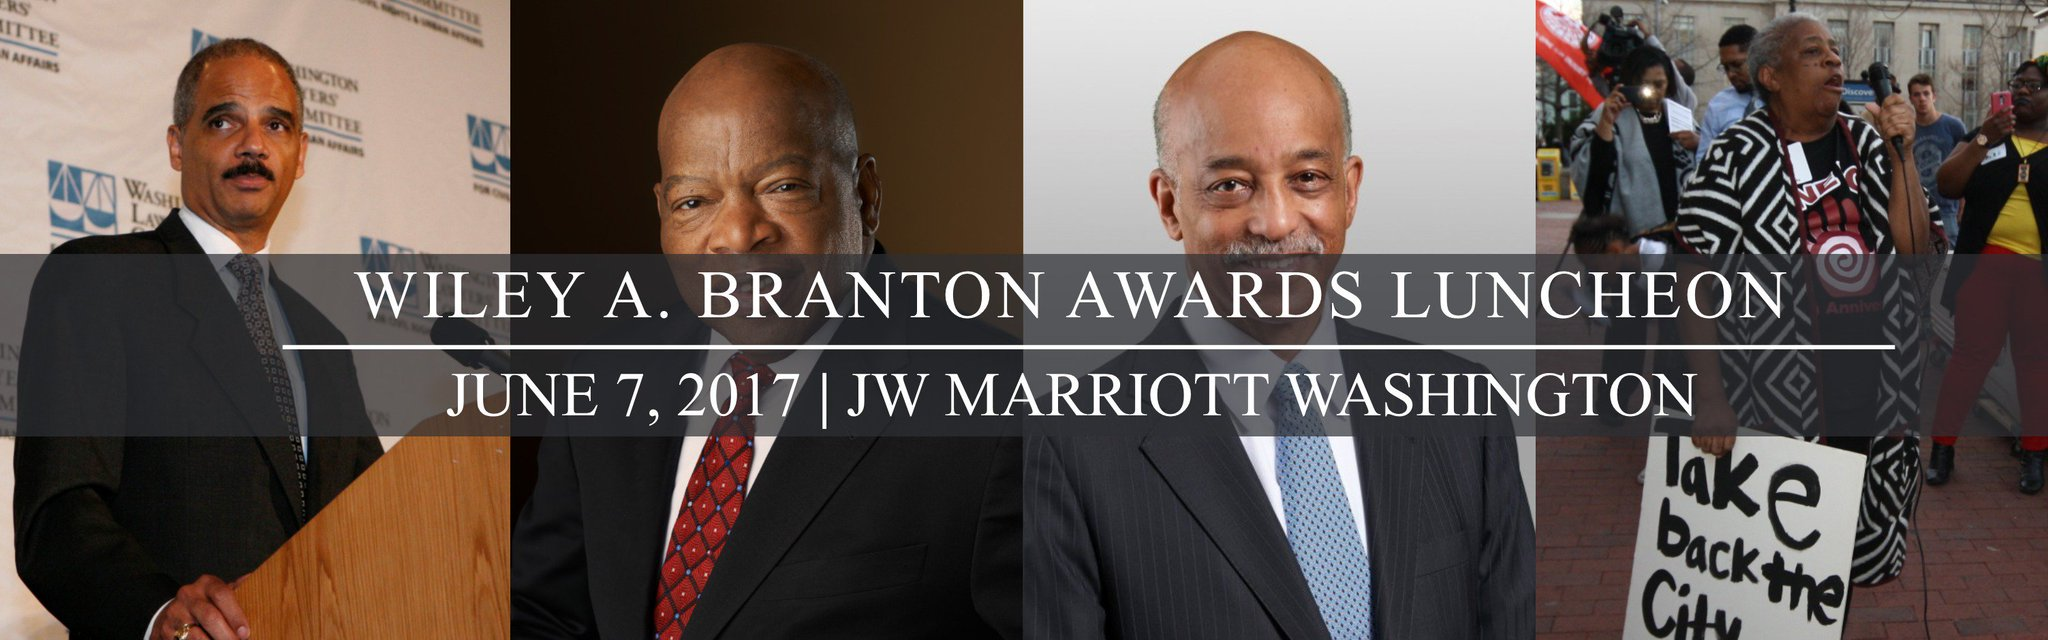 On Wed we will celebrate the achievements of the last year at the Wiley A. Branton Awards Luncheon! #Branton2017 https://t.co/8Jdxd6APaE https://t.co/bzJMpb3GM2